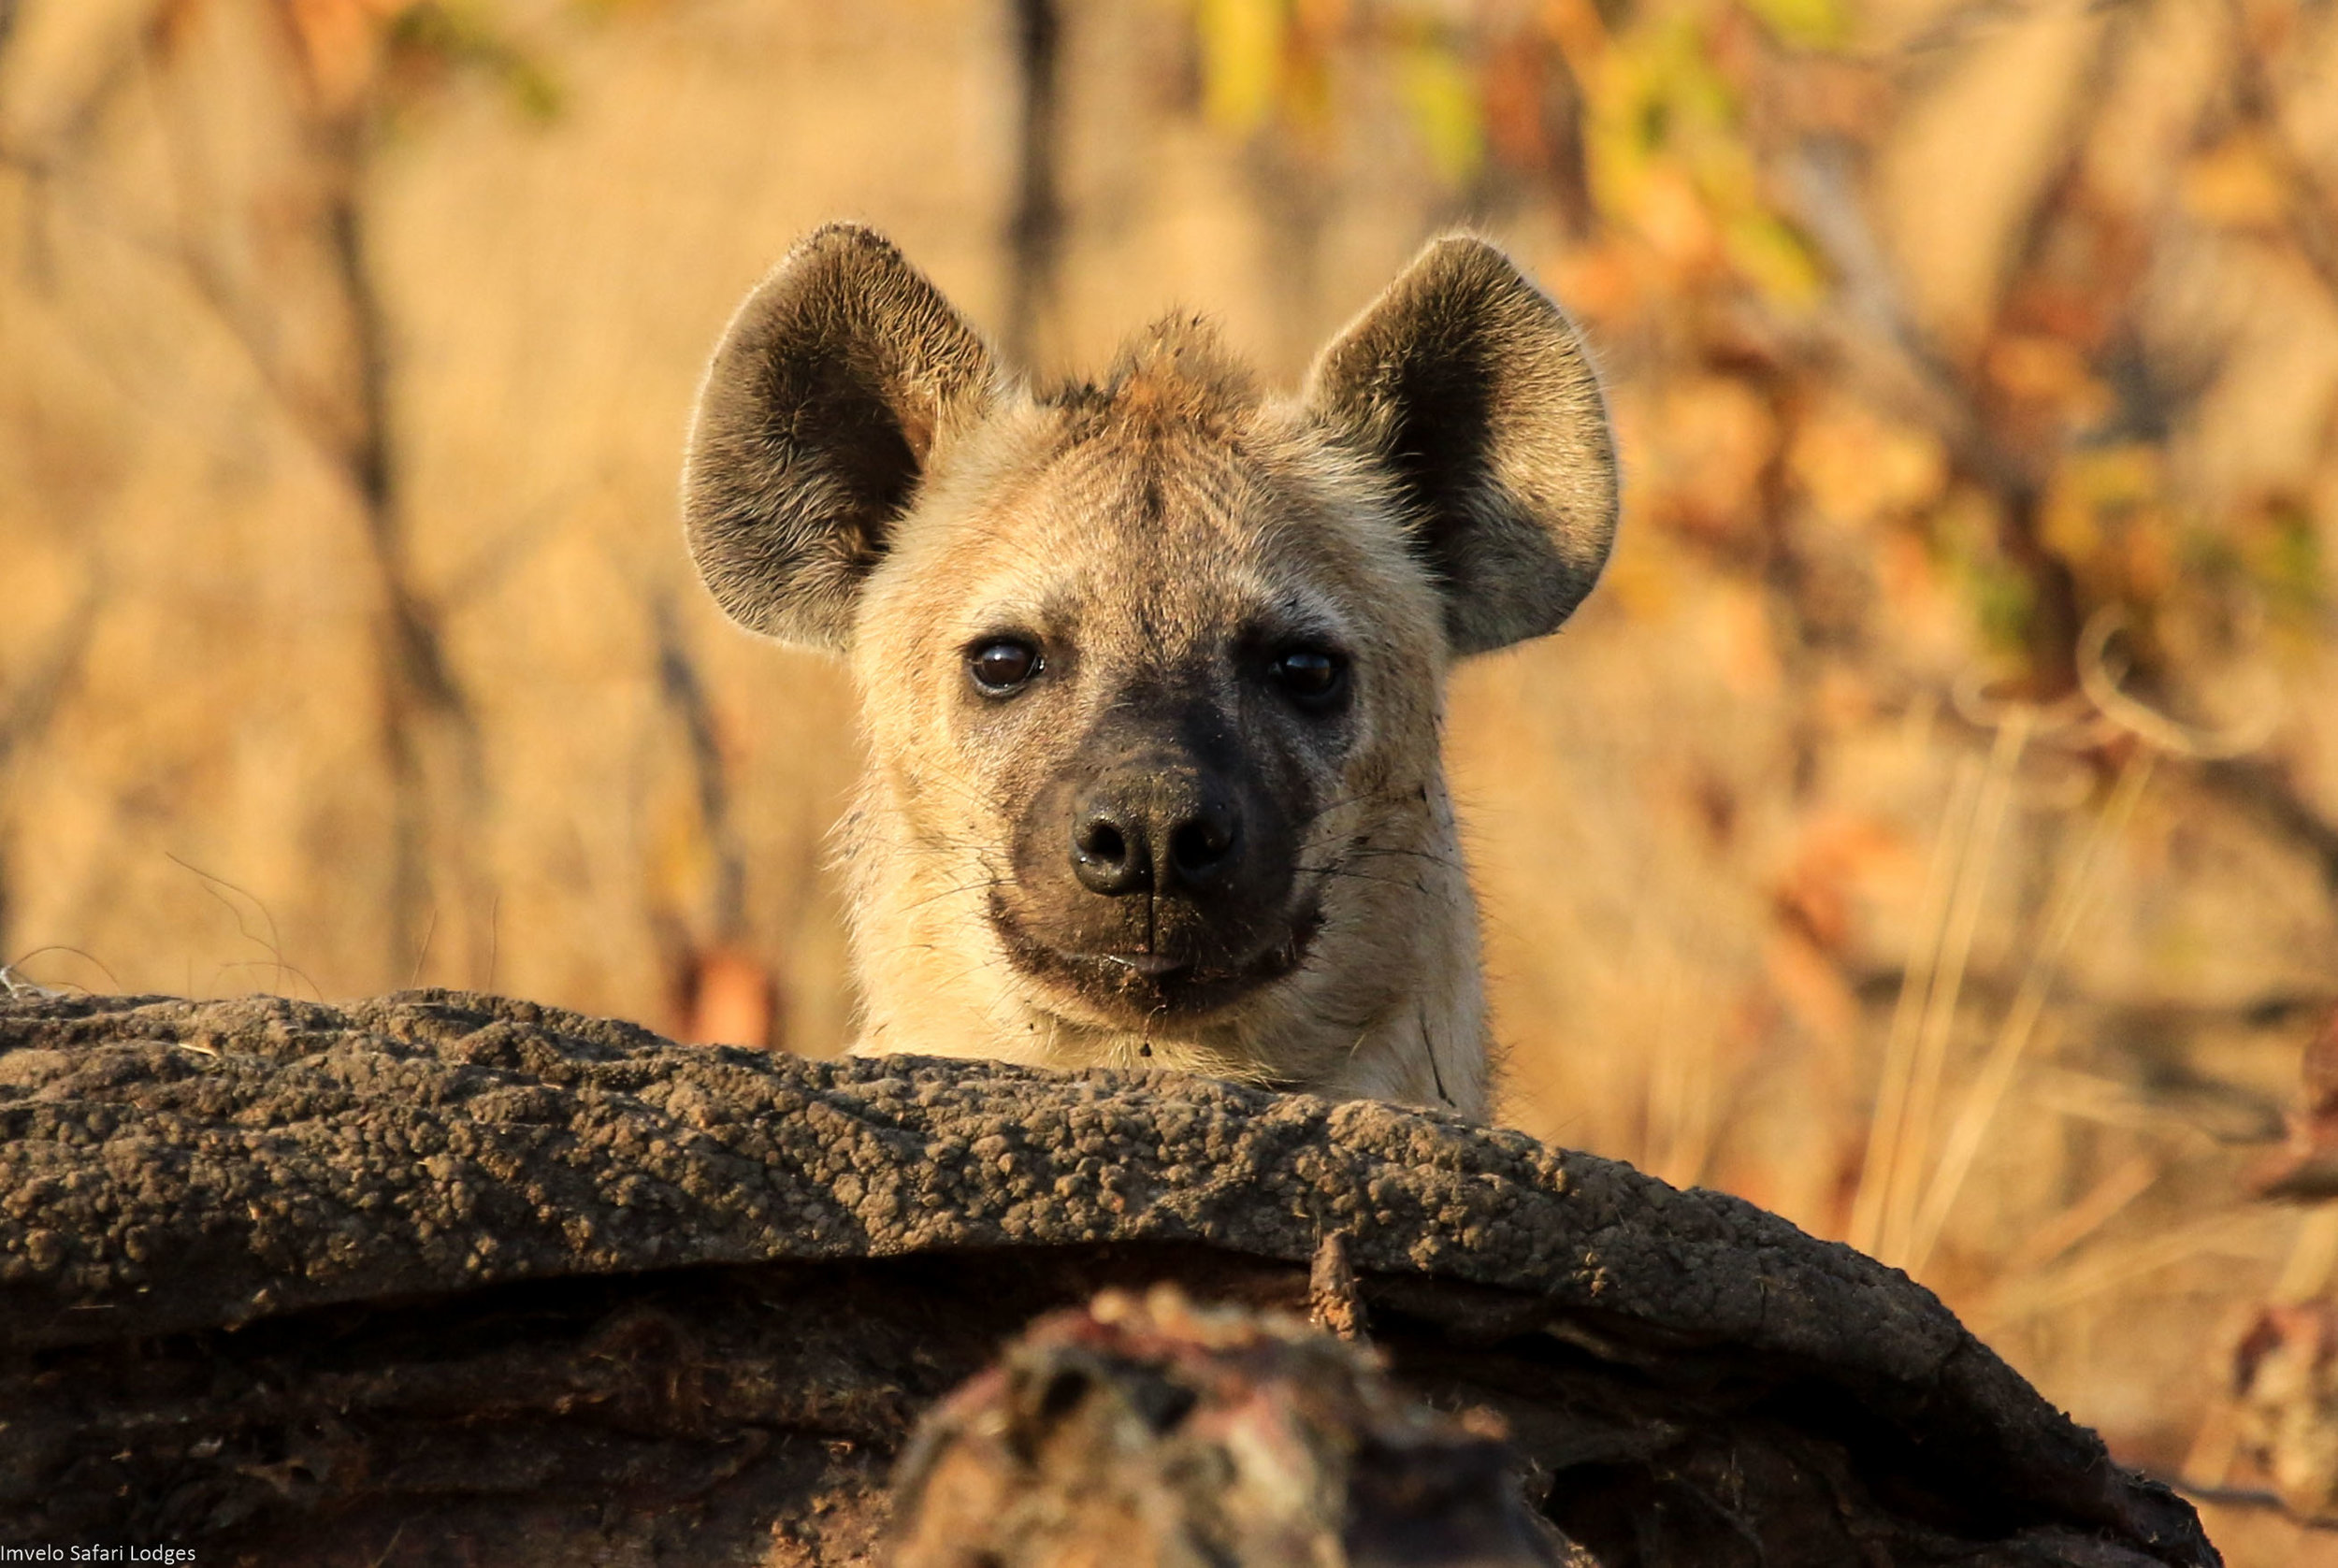 42 - Imvelo Safari Lodges - Nehimba - Young curious  Spotted Hyaena.jpg